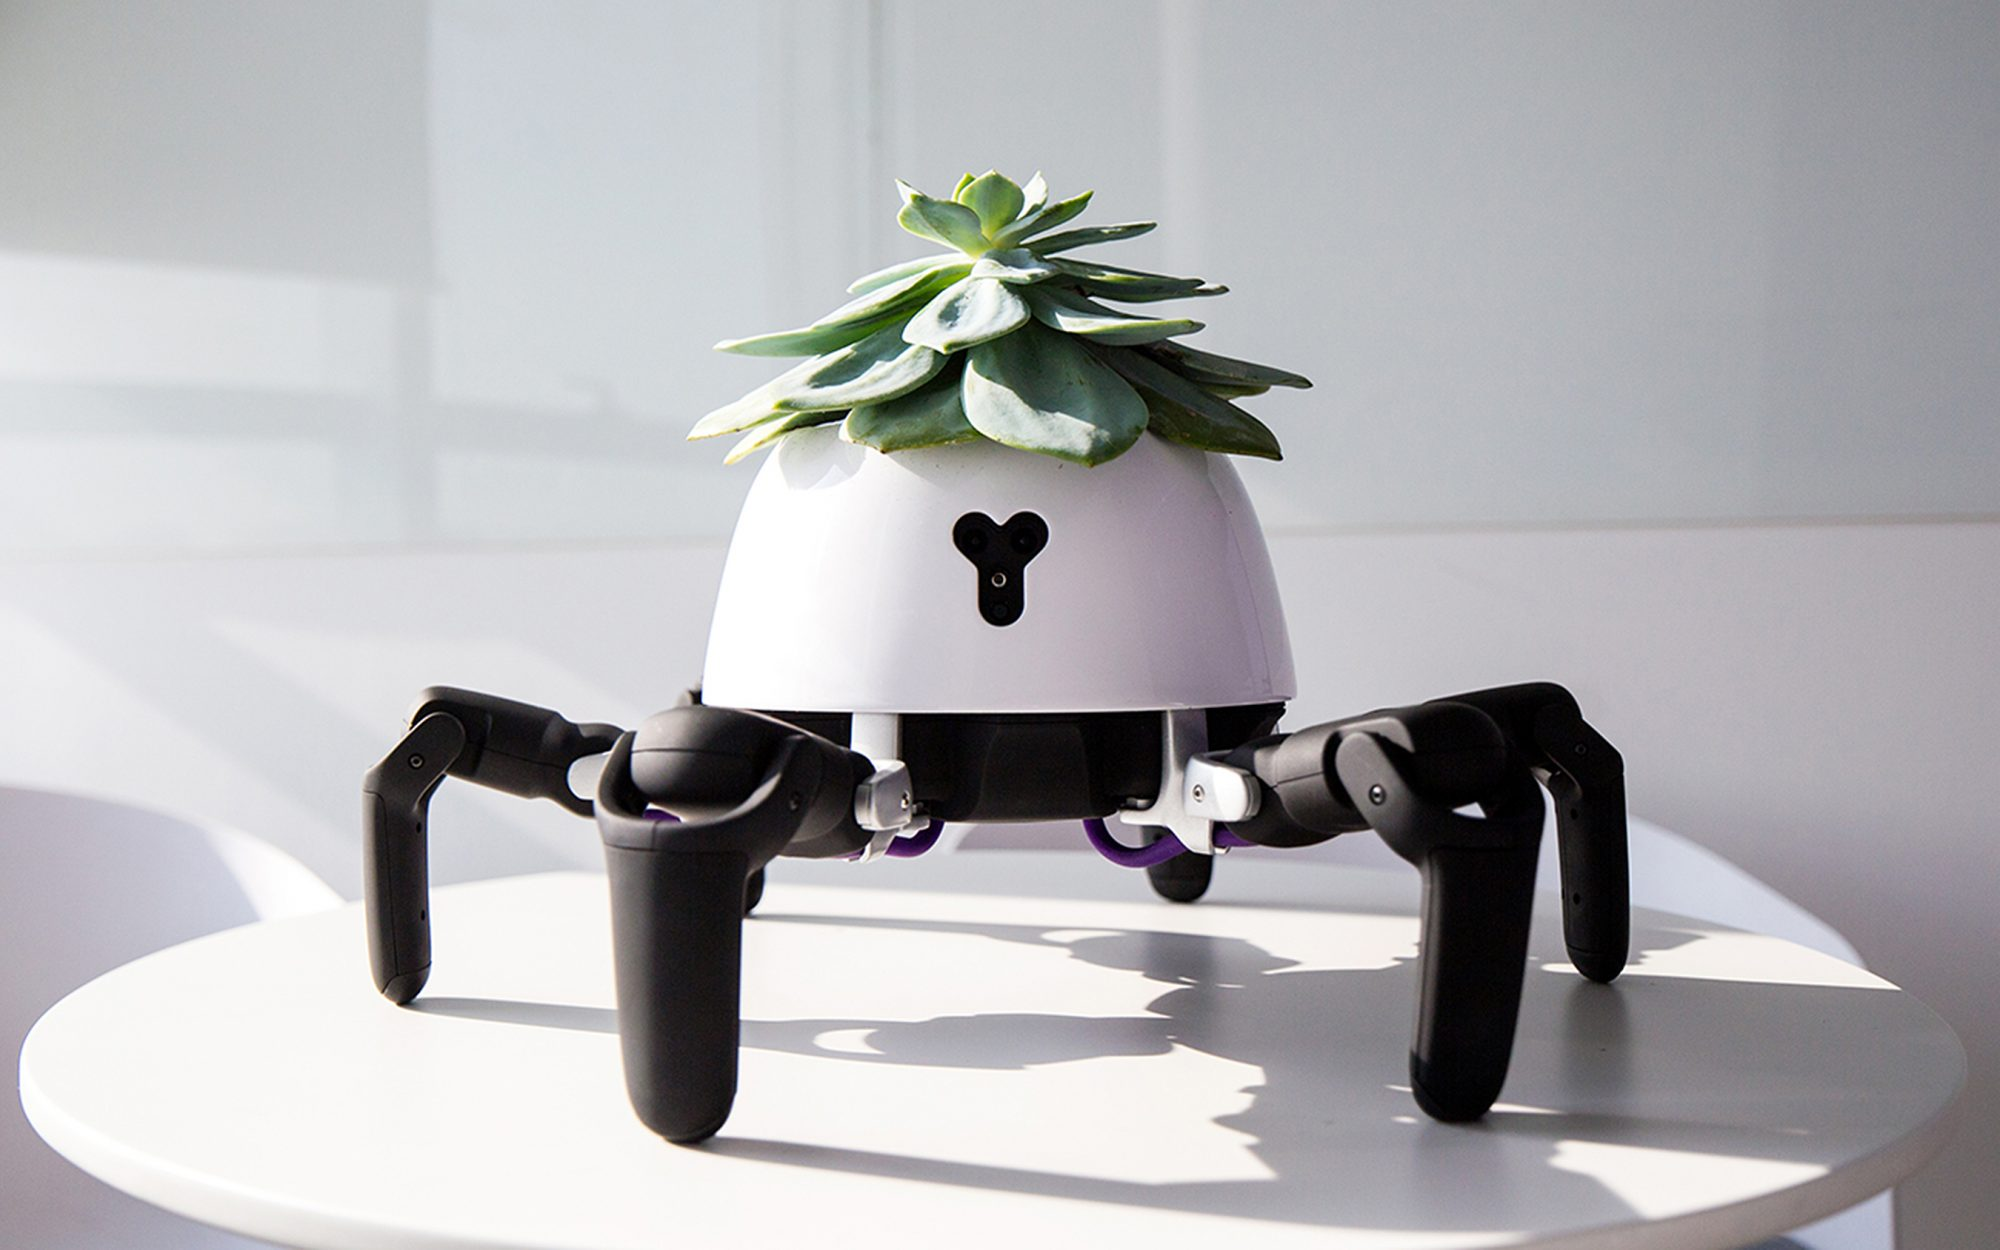 This Robot Planter Follows the Sun to Keep Your House Plants Alive, No Green Thumb Required